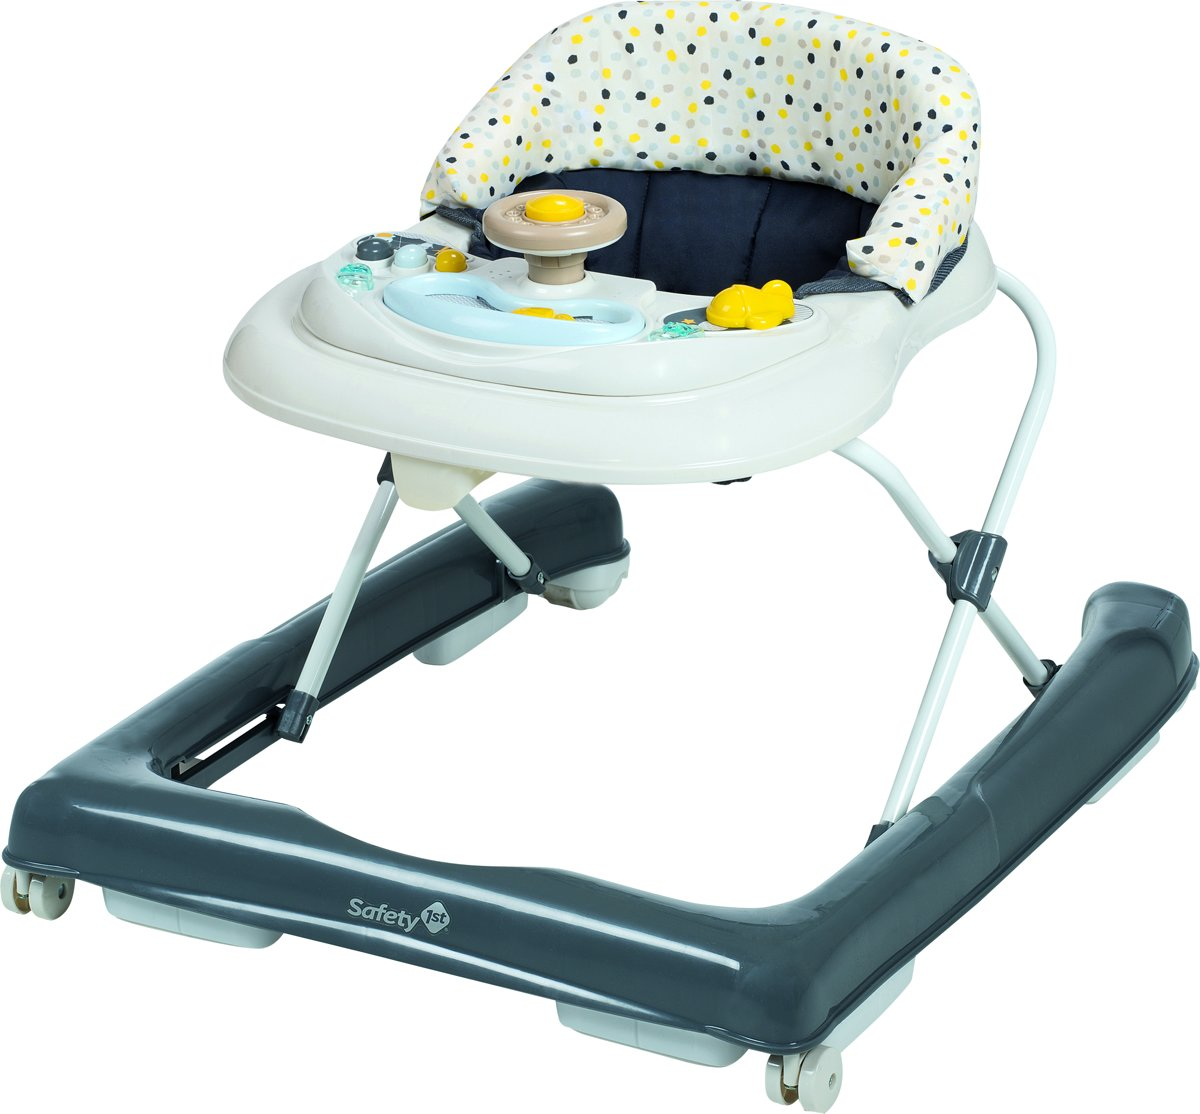 Safety 1st Ludo Baby Walker - Loopstoel - Grey Patches kopen